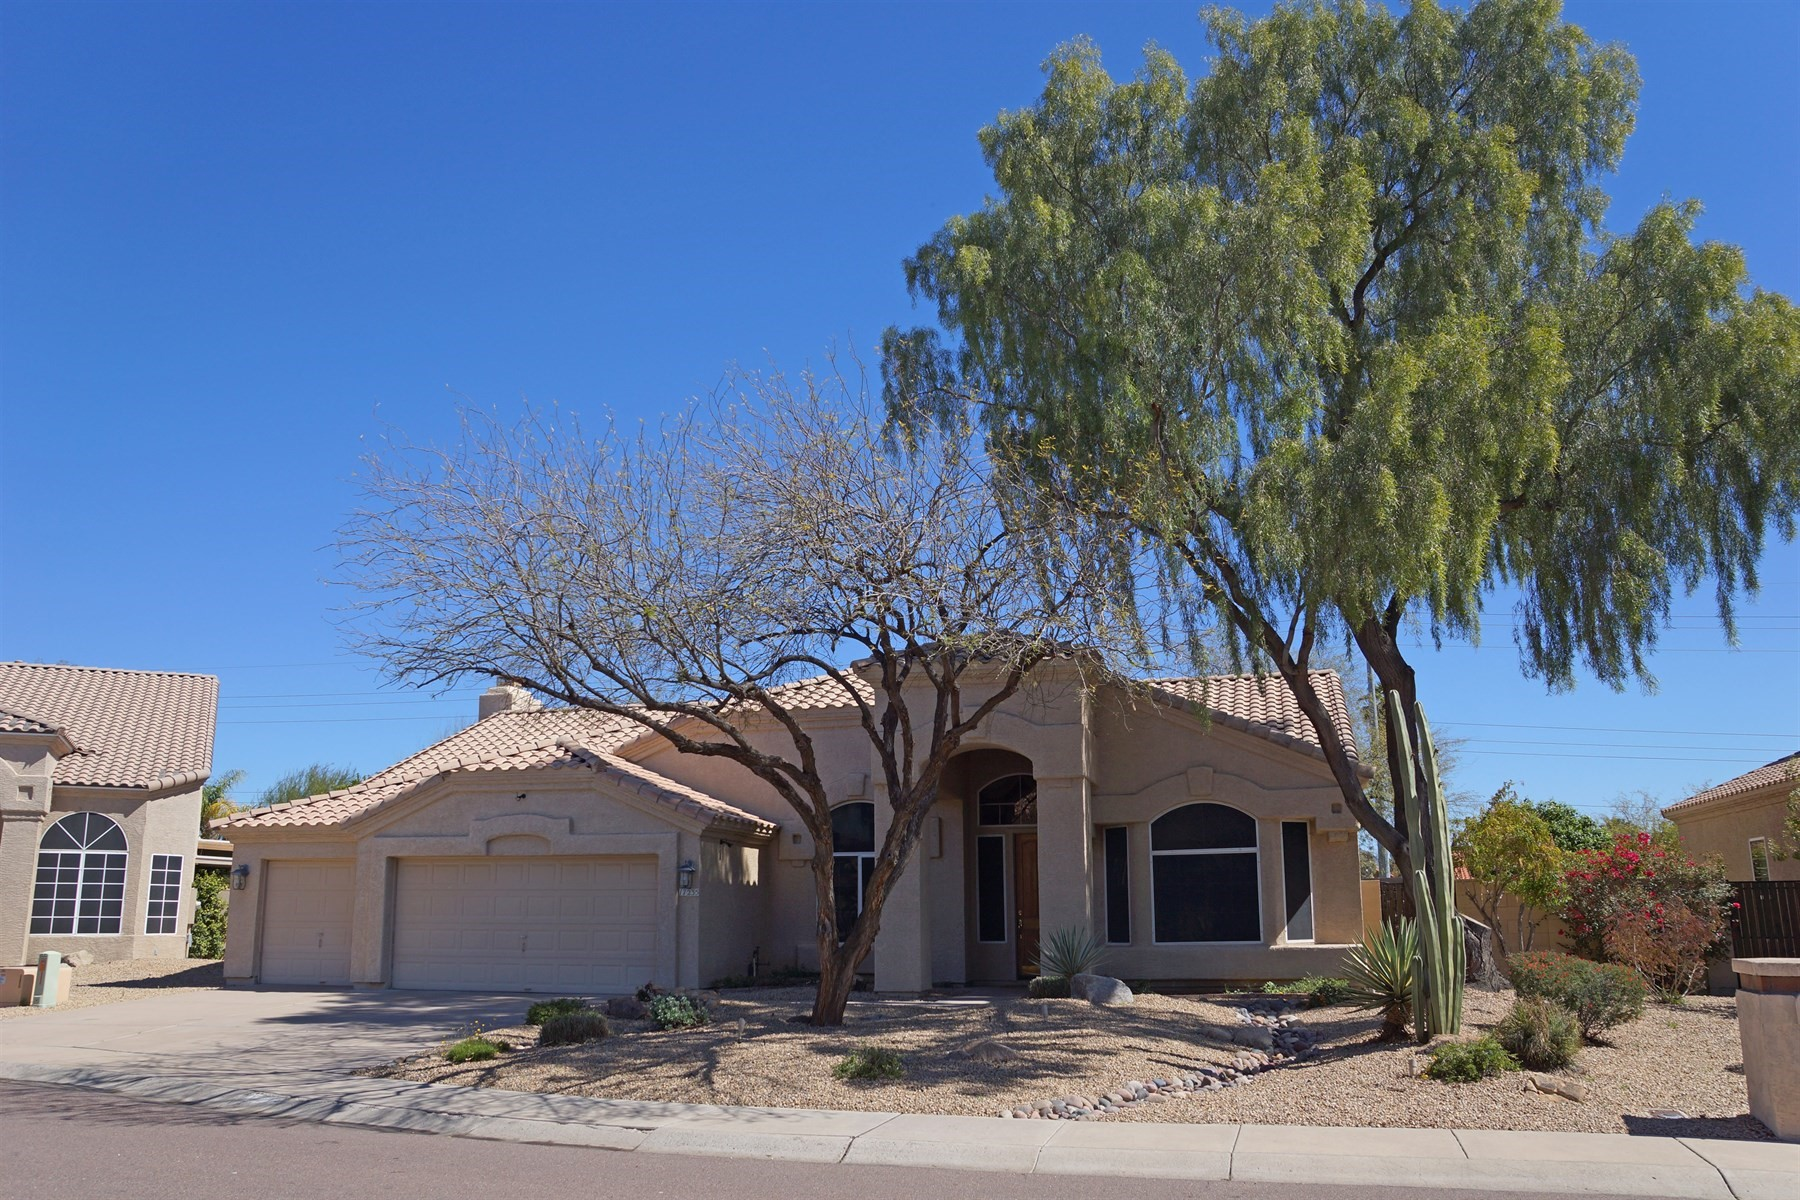 Maison unifamiliale pour l Vente à Beautifully updated single level home 17235 N 55th Pl Scottsdale, Arizona, 85254 États-Unis